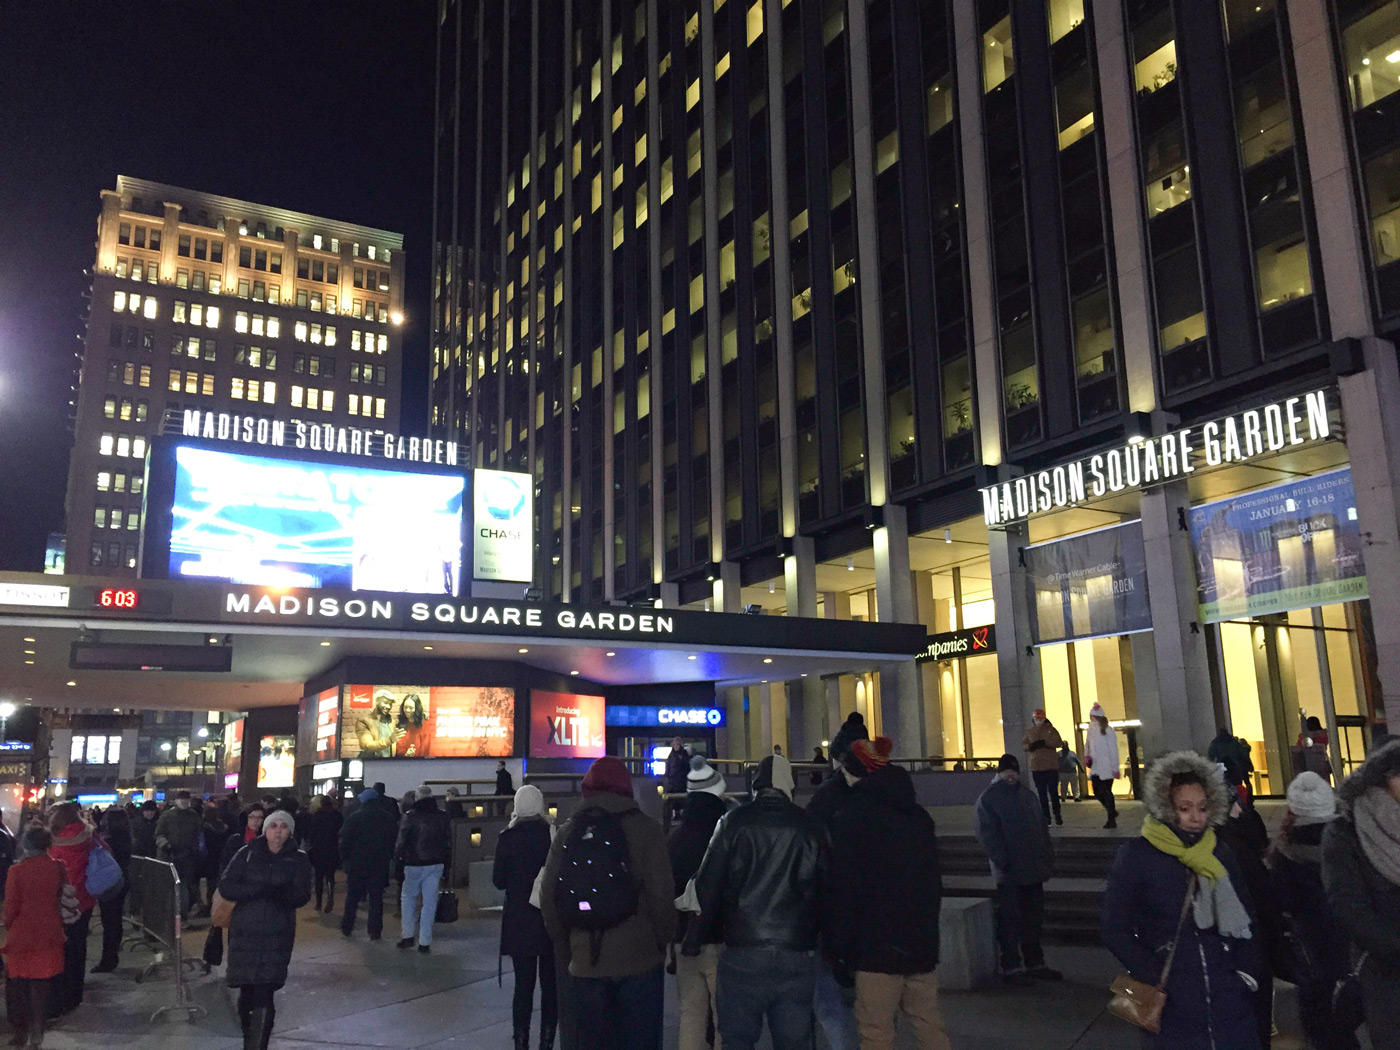 Heading into Madison Square Garden